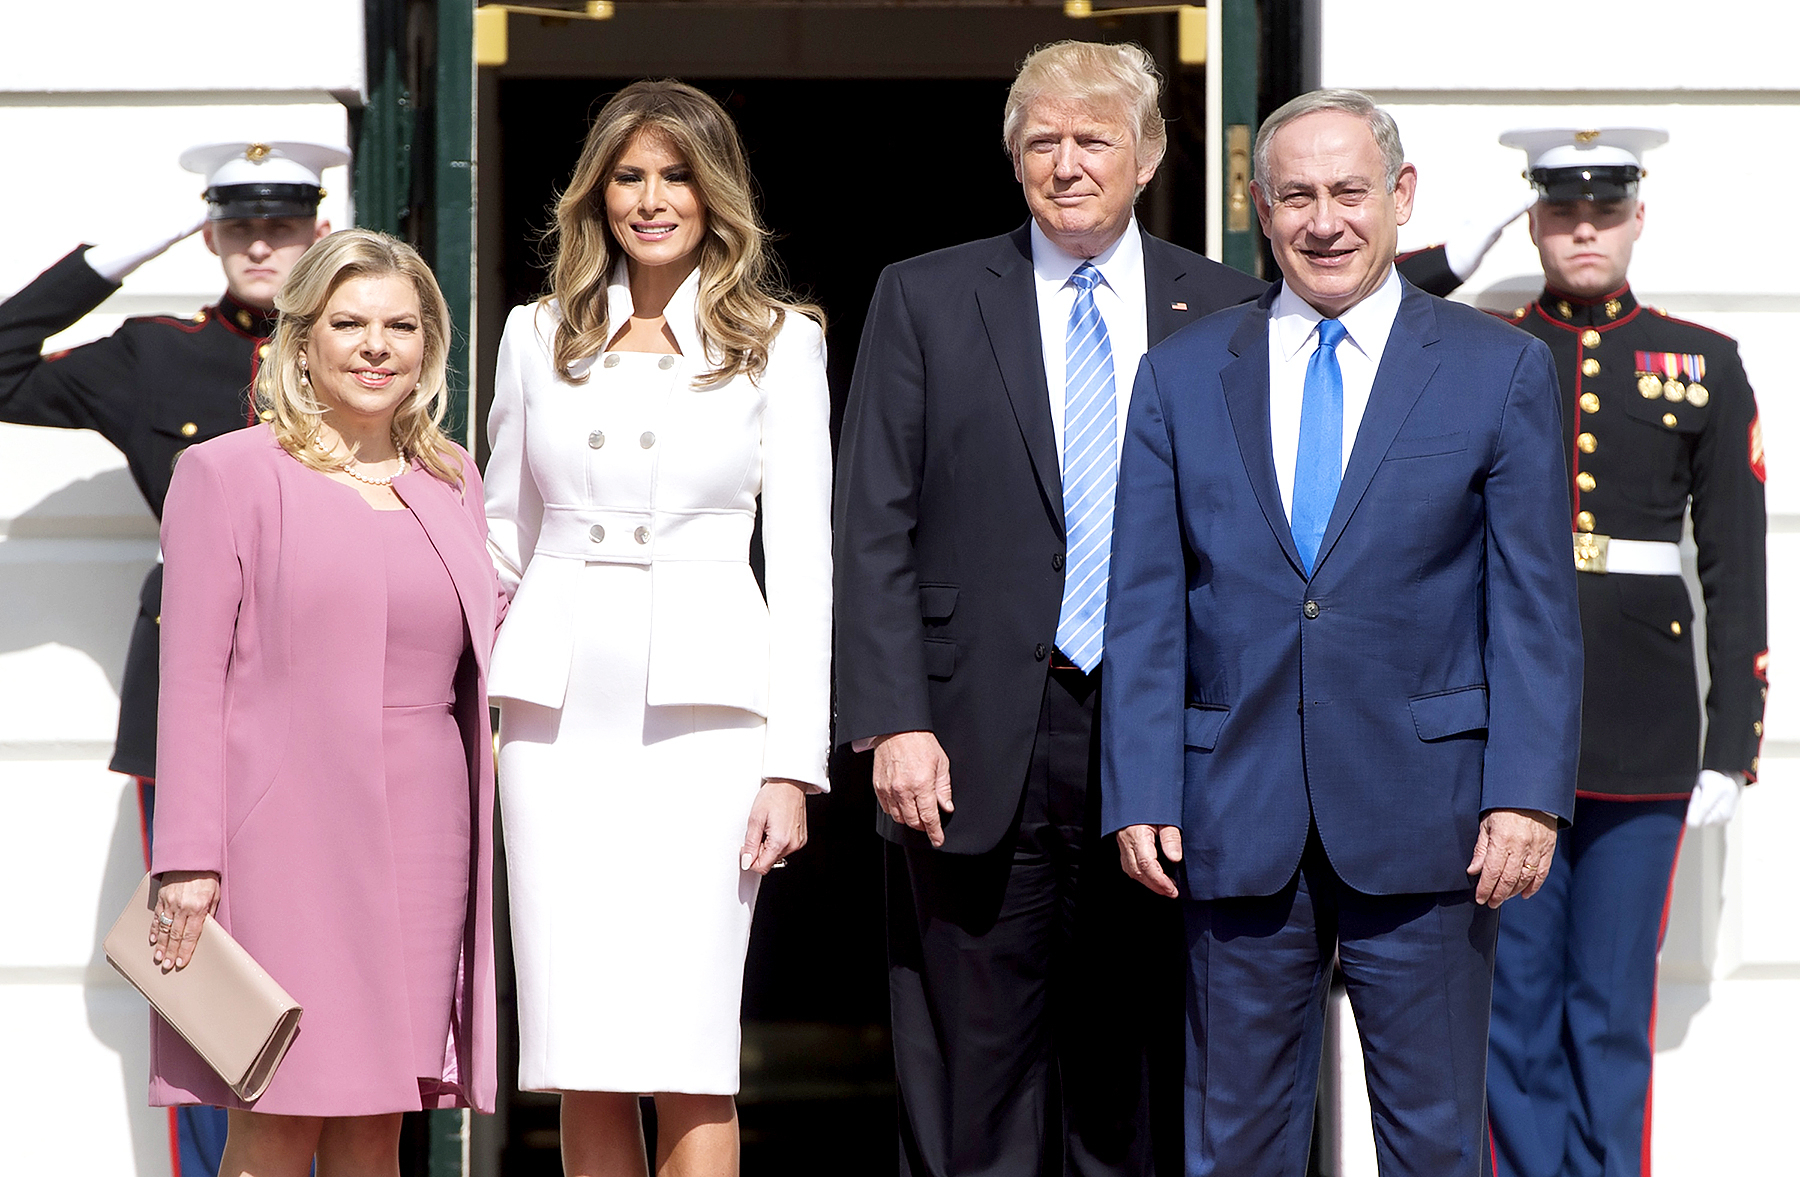 US President Donald Trump (C-R) and Israeli Prime Minister Benjamin Netanyahu (R), along with their wives, First Lady Melania Trump (C-L) and Sara Netanyahu (L), pose at the White House in Washington, DC, February 15, 2017.